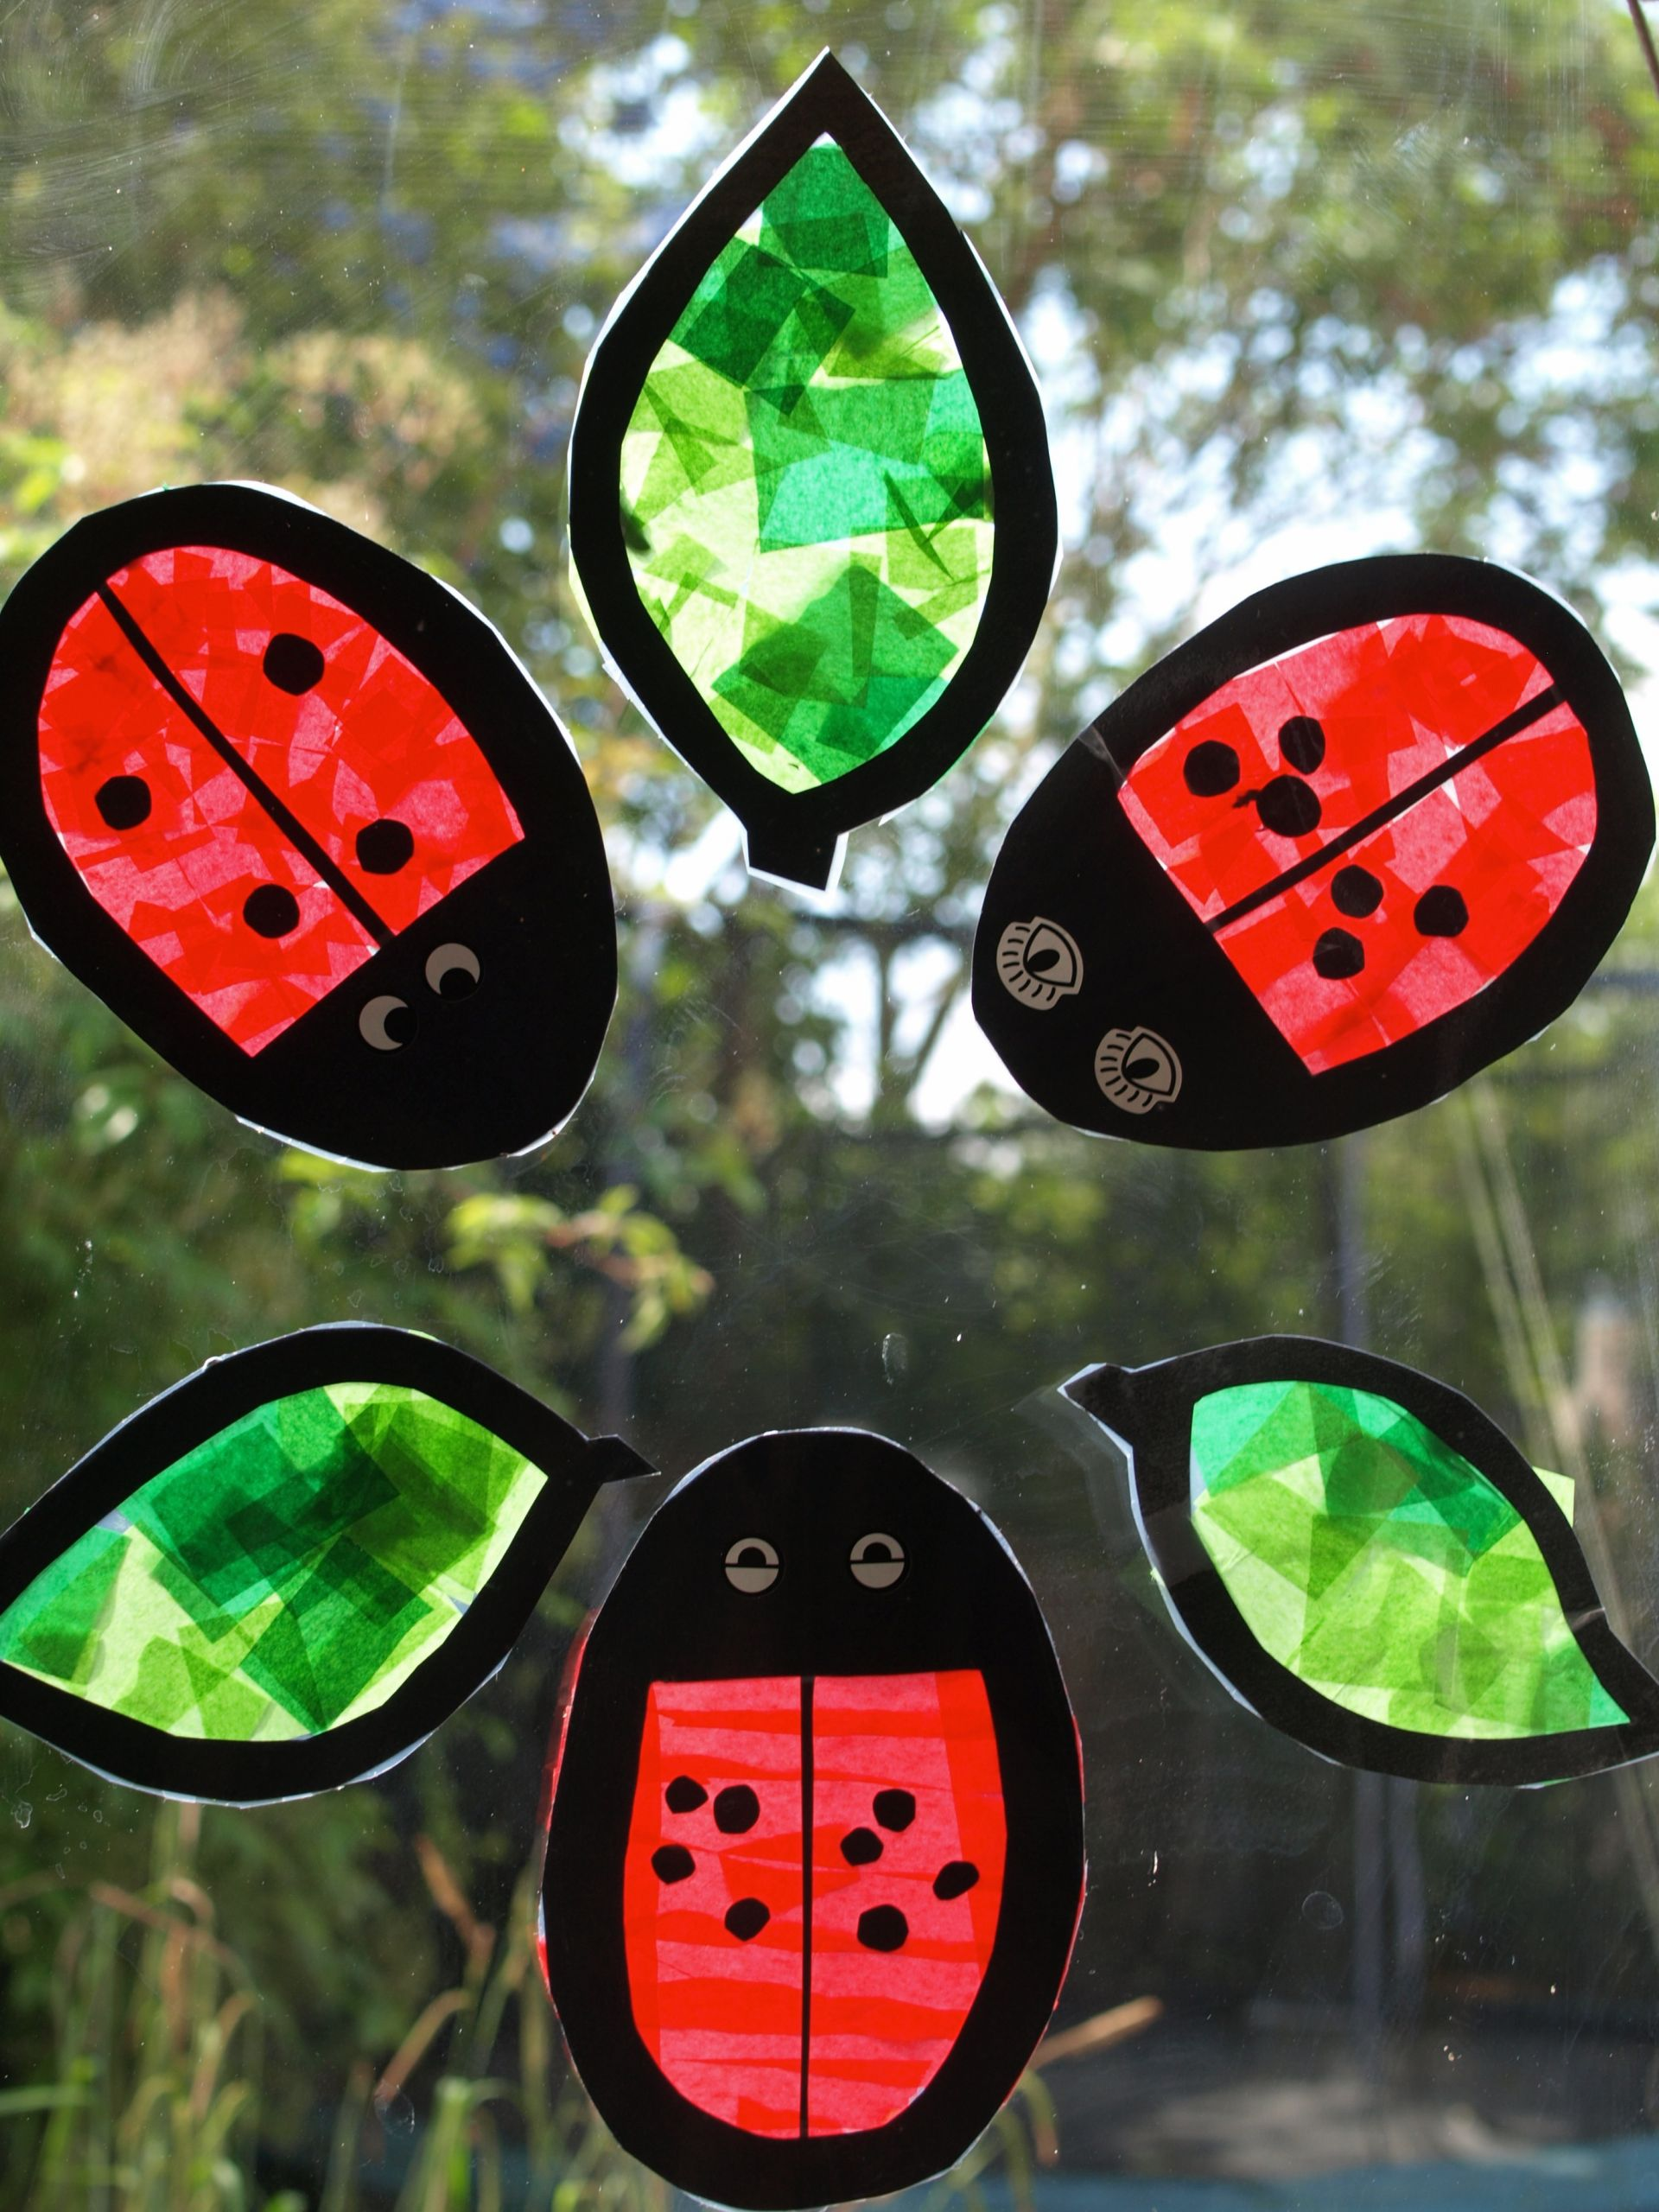 Fun Crafts For Preschoolers  Over 20 Easy to Make Crafts for Kids That Wel e Spring